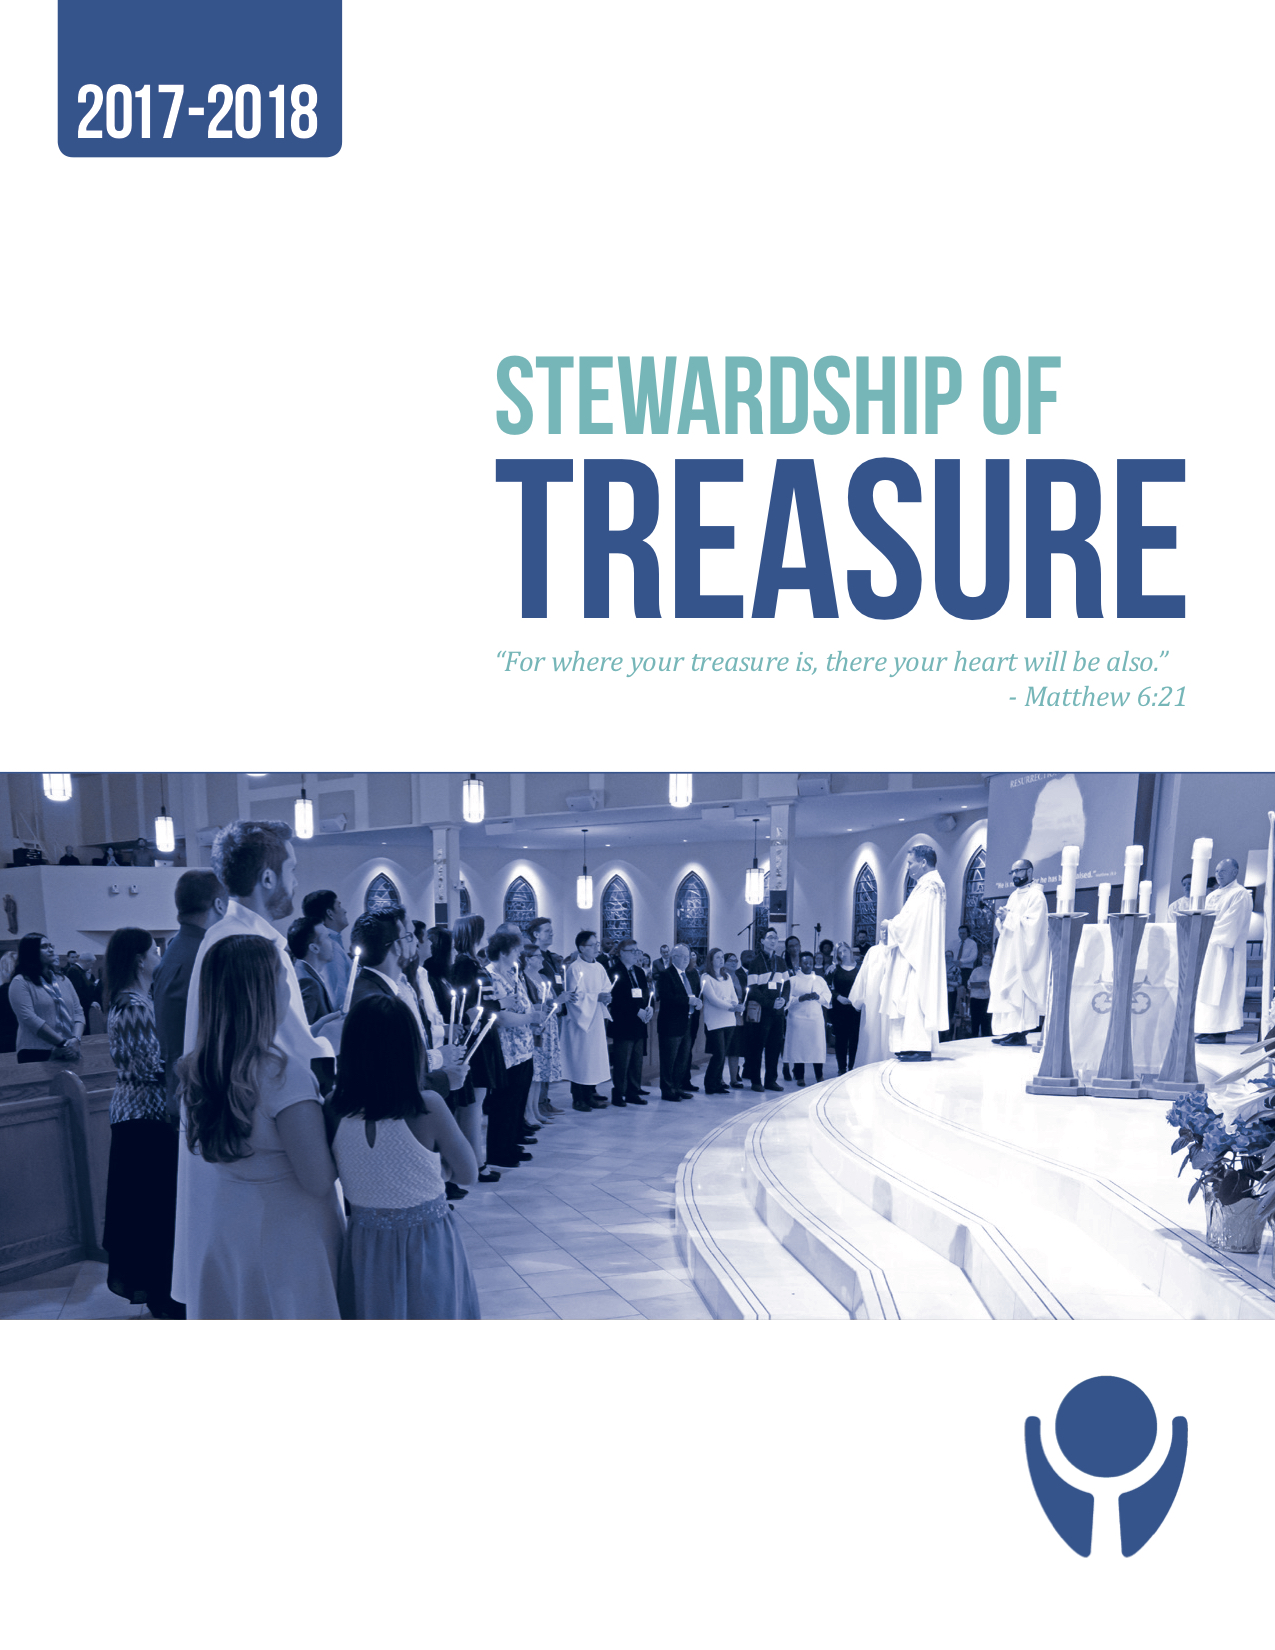 Treasure Booklet, 2017-2018 - Click on the cover of our Treasure Booklet to view an electronic copy. Printed copies will be available at Mass on the weekend of April 28/29th.